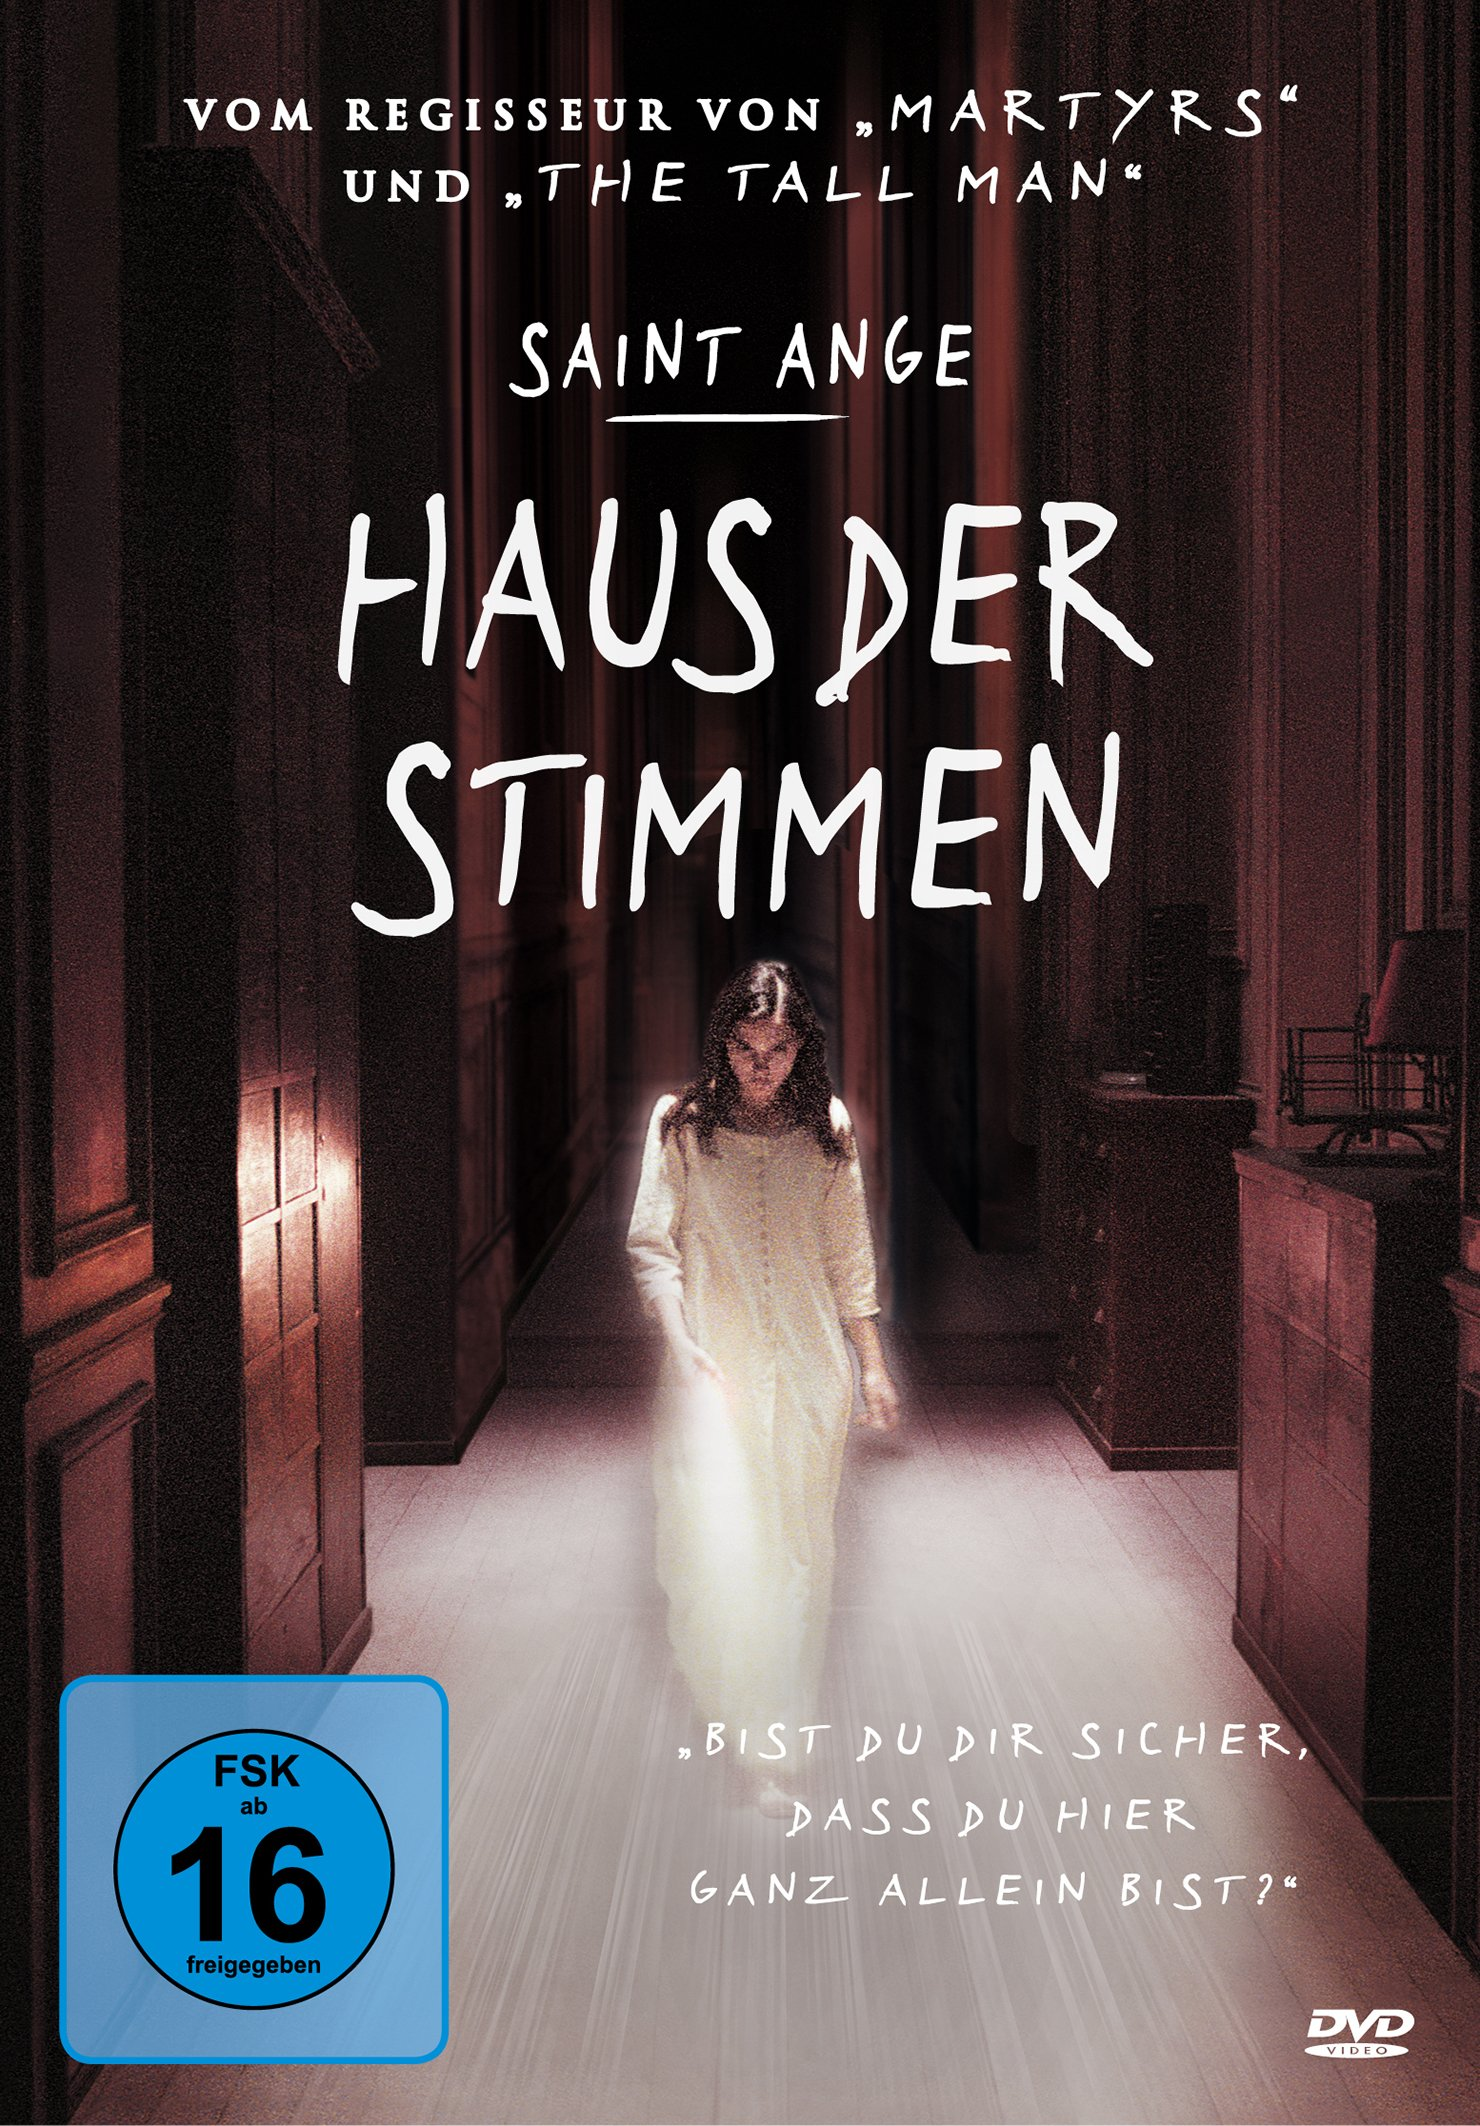 : Saint Ange Haus der Stimmen German 2004 Ac3 Bdrip x264-MoviEiT